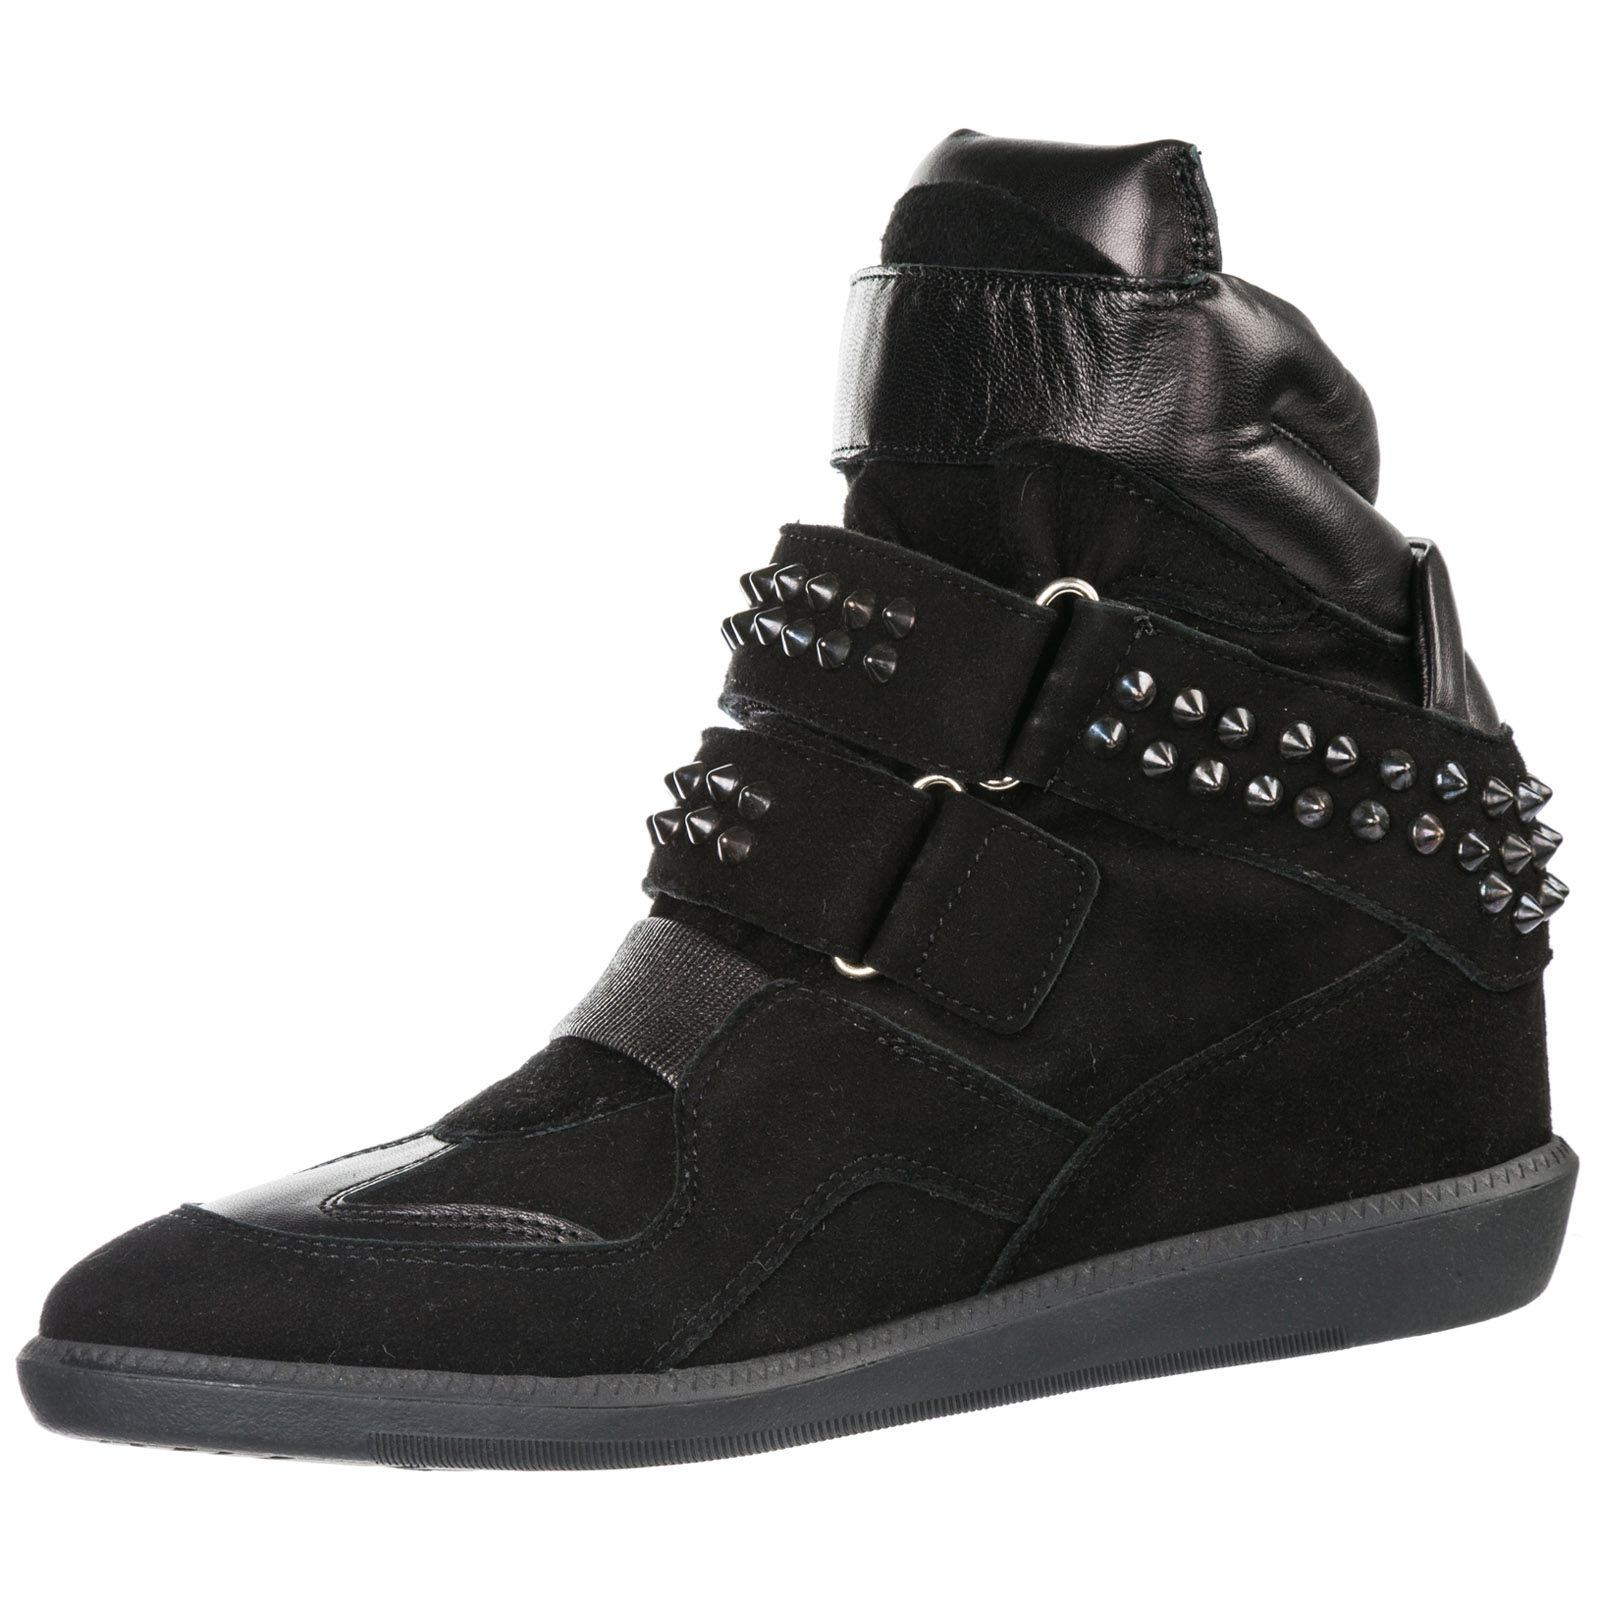 Women's shoes high top suede trainers sneakers